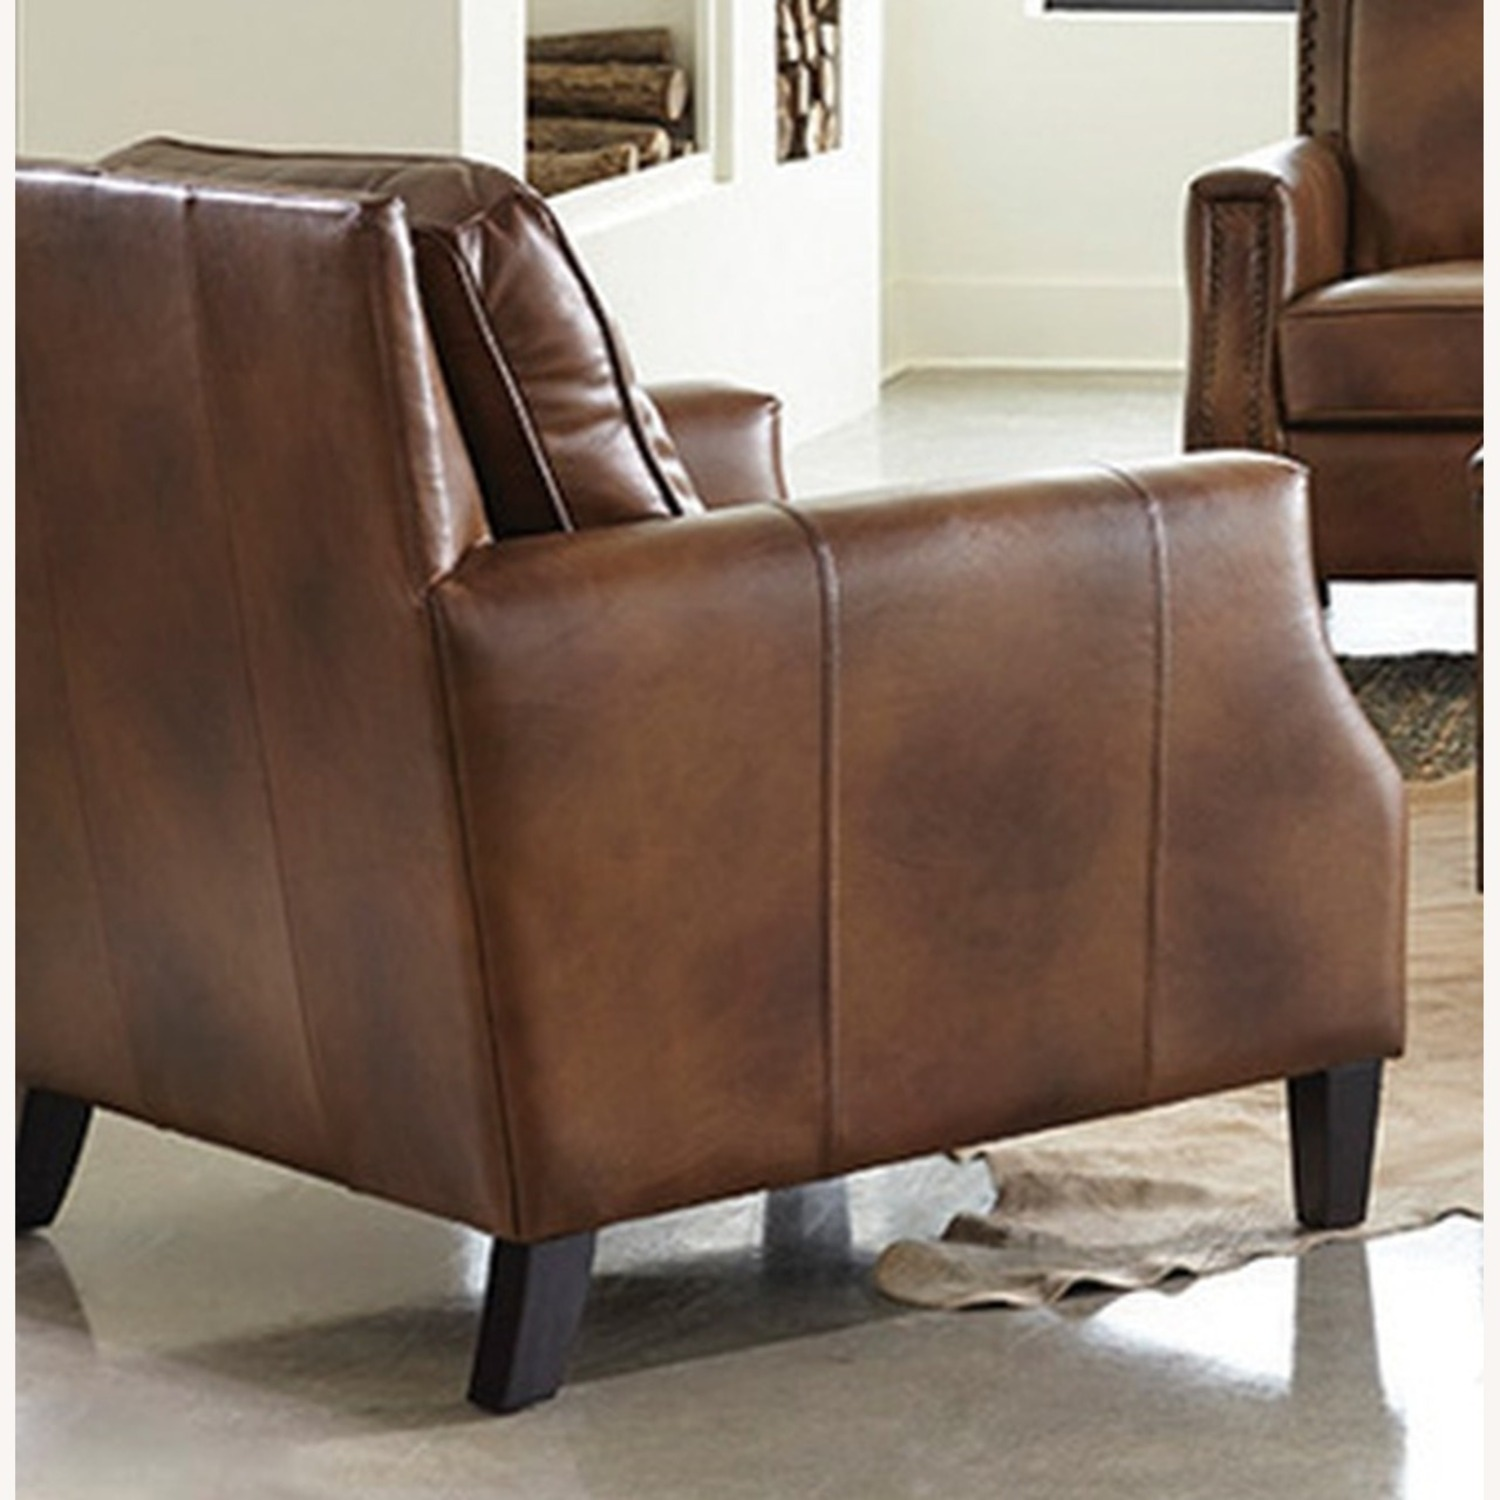 Chair In Brown Sugar Leather Upholstery - image-1